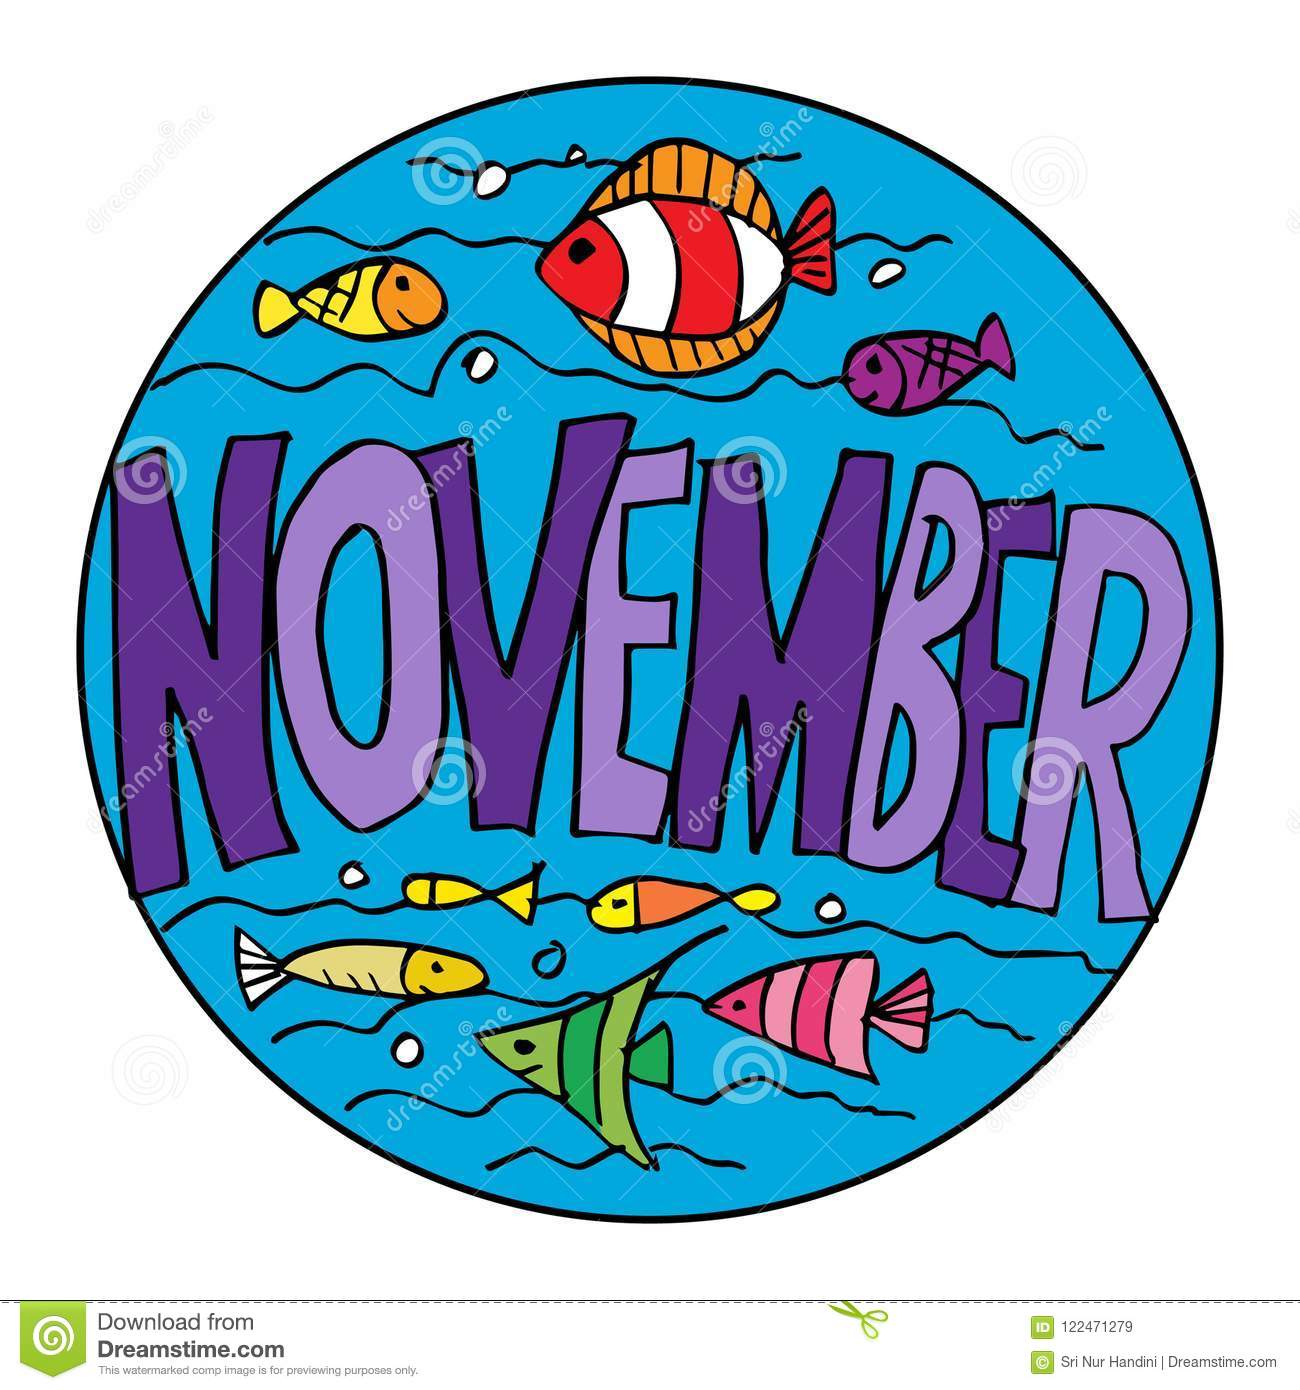 Color Example November Coloring Pages For Kids Stock Illustration Illustration Of Inspiration Line 122471279